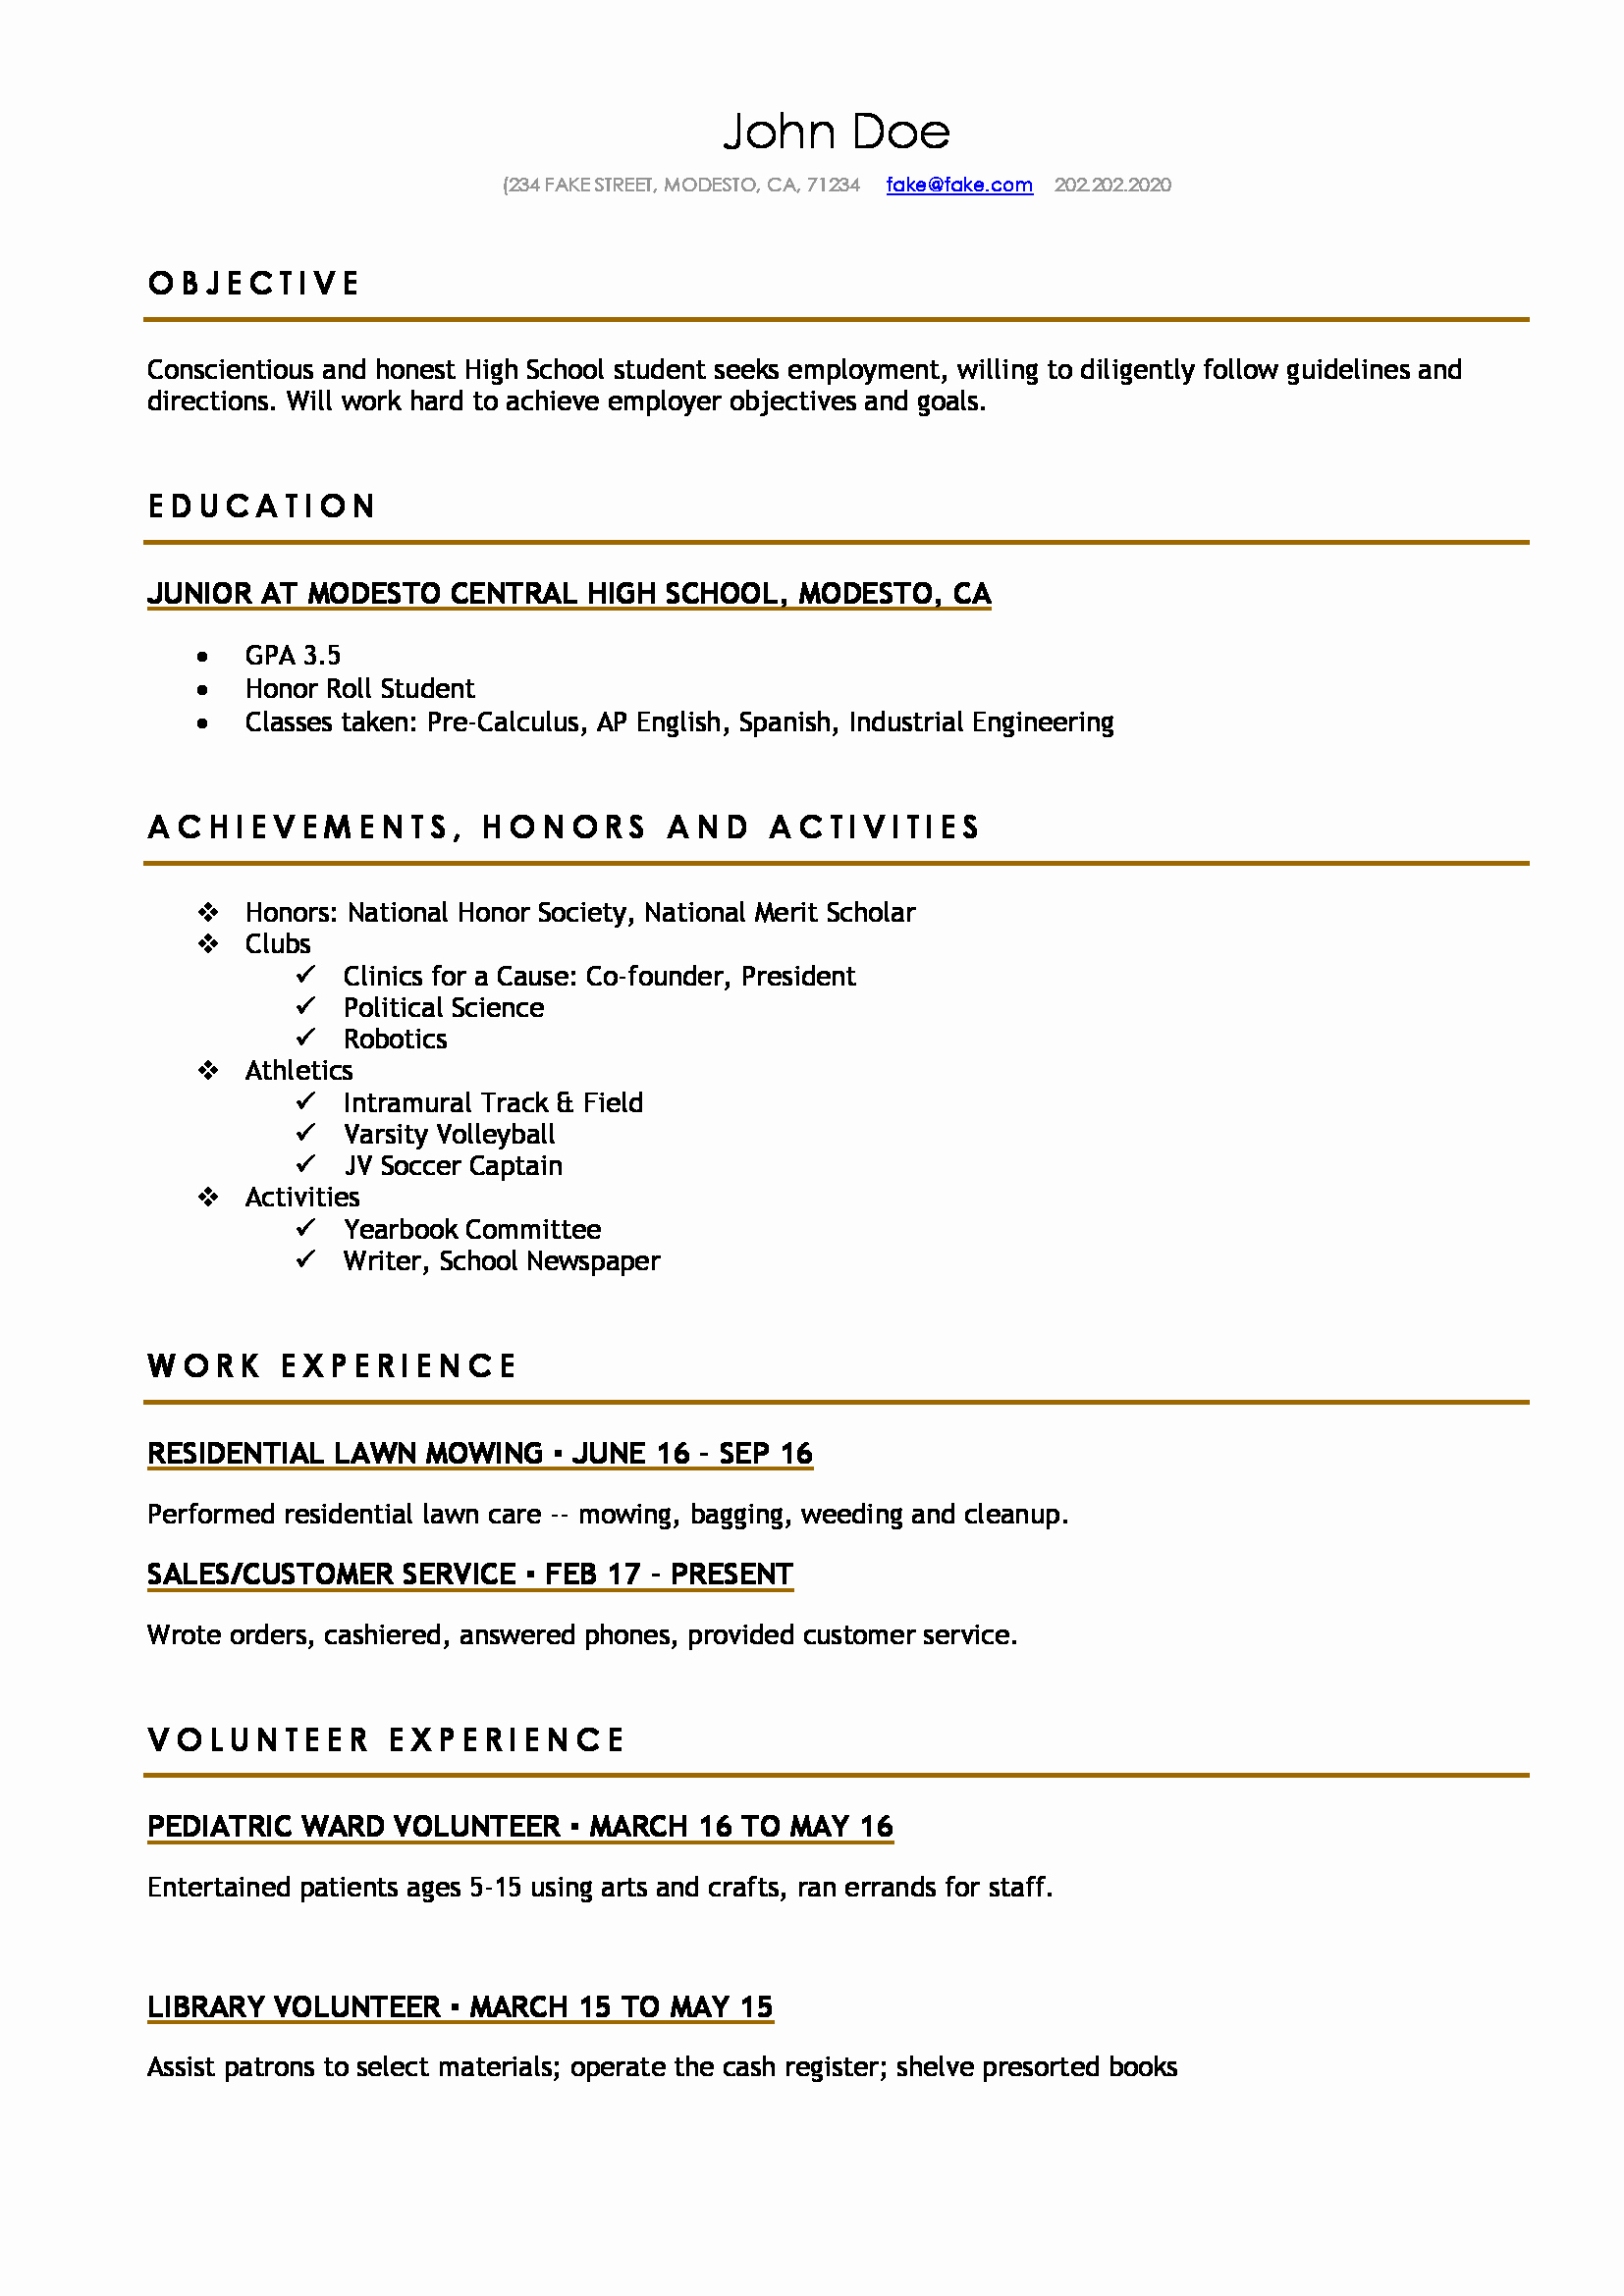 Sample Resume High School Beautiful High School Resume Resumes Perfect for High School Students